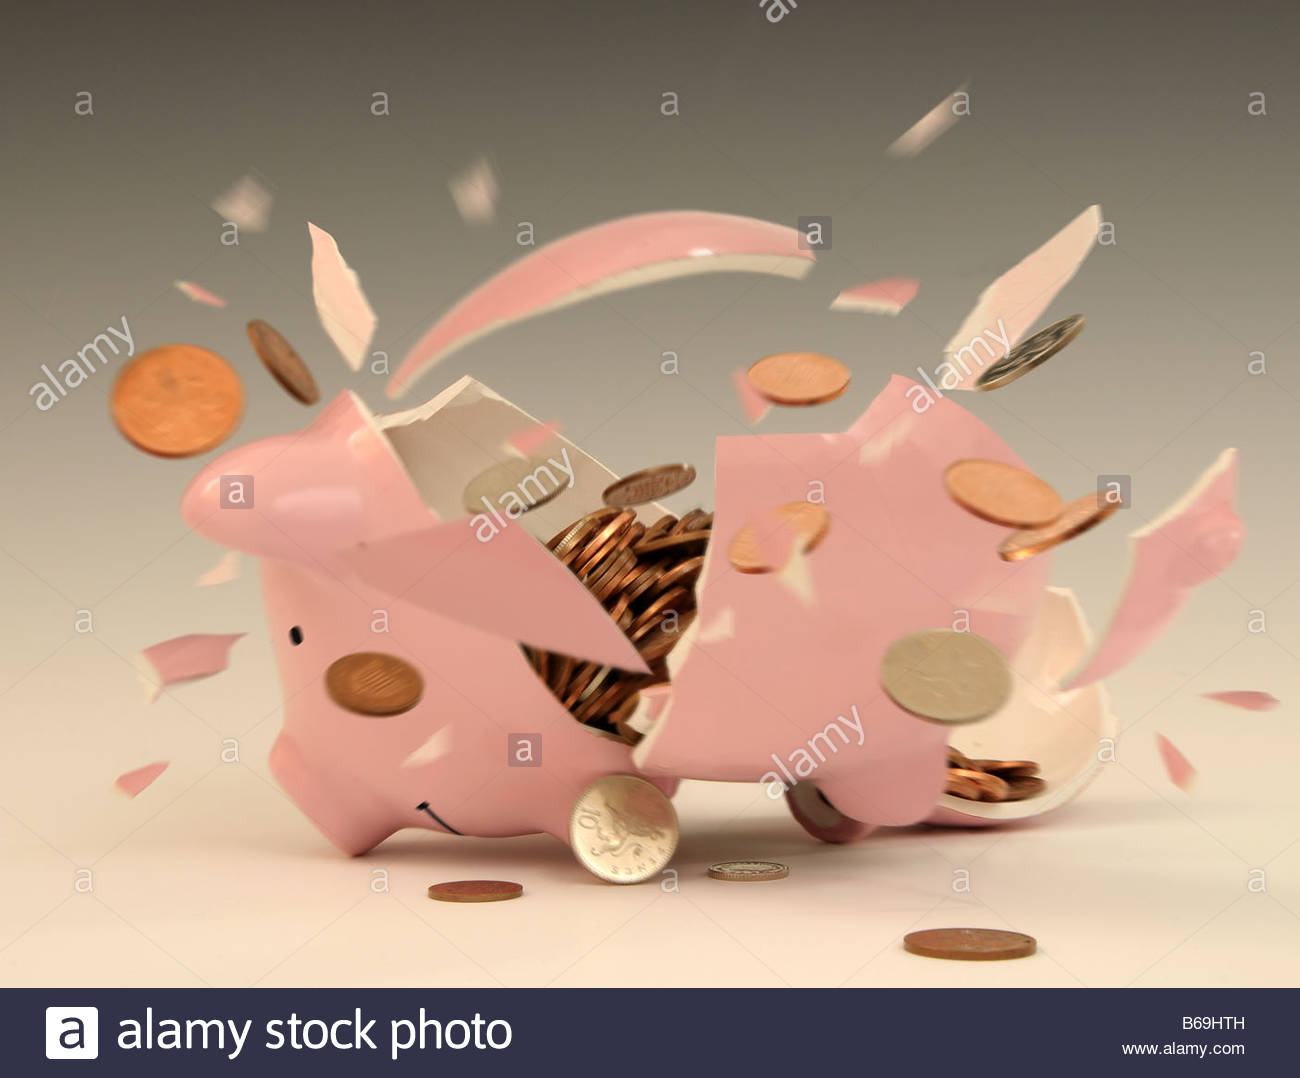 Smashed open piggy bank clipart svg freeuse Piggy Bank Being Smashed Open, Image By Tony Rusecki Stock Photo ... svg freeuse